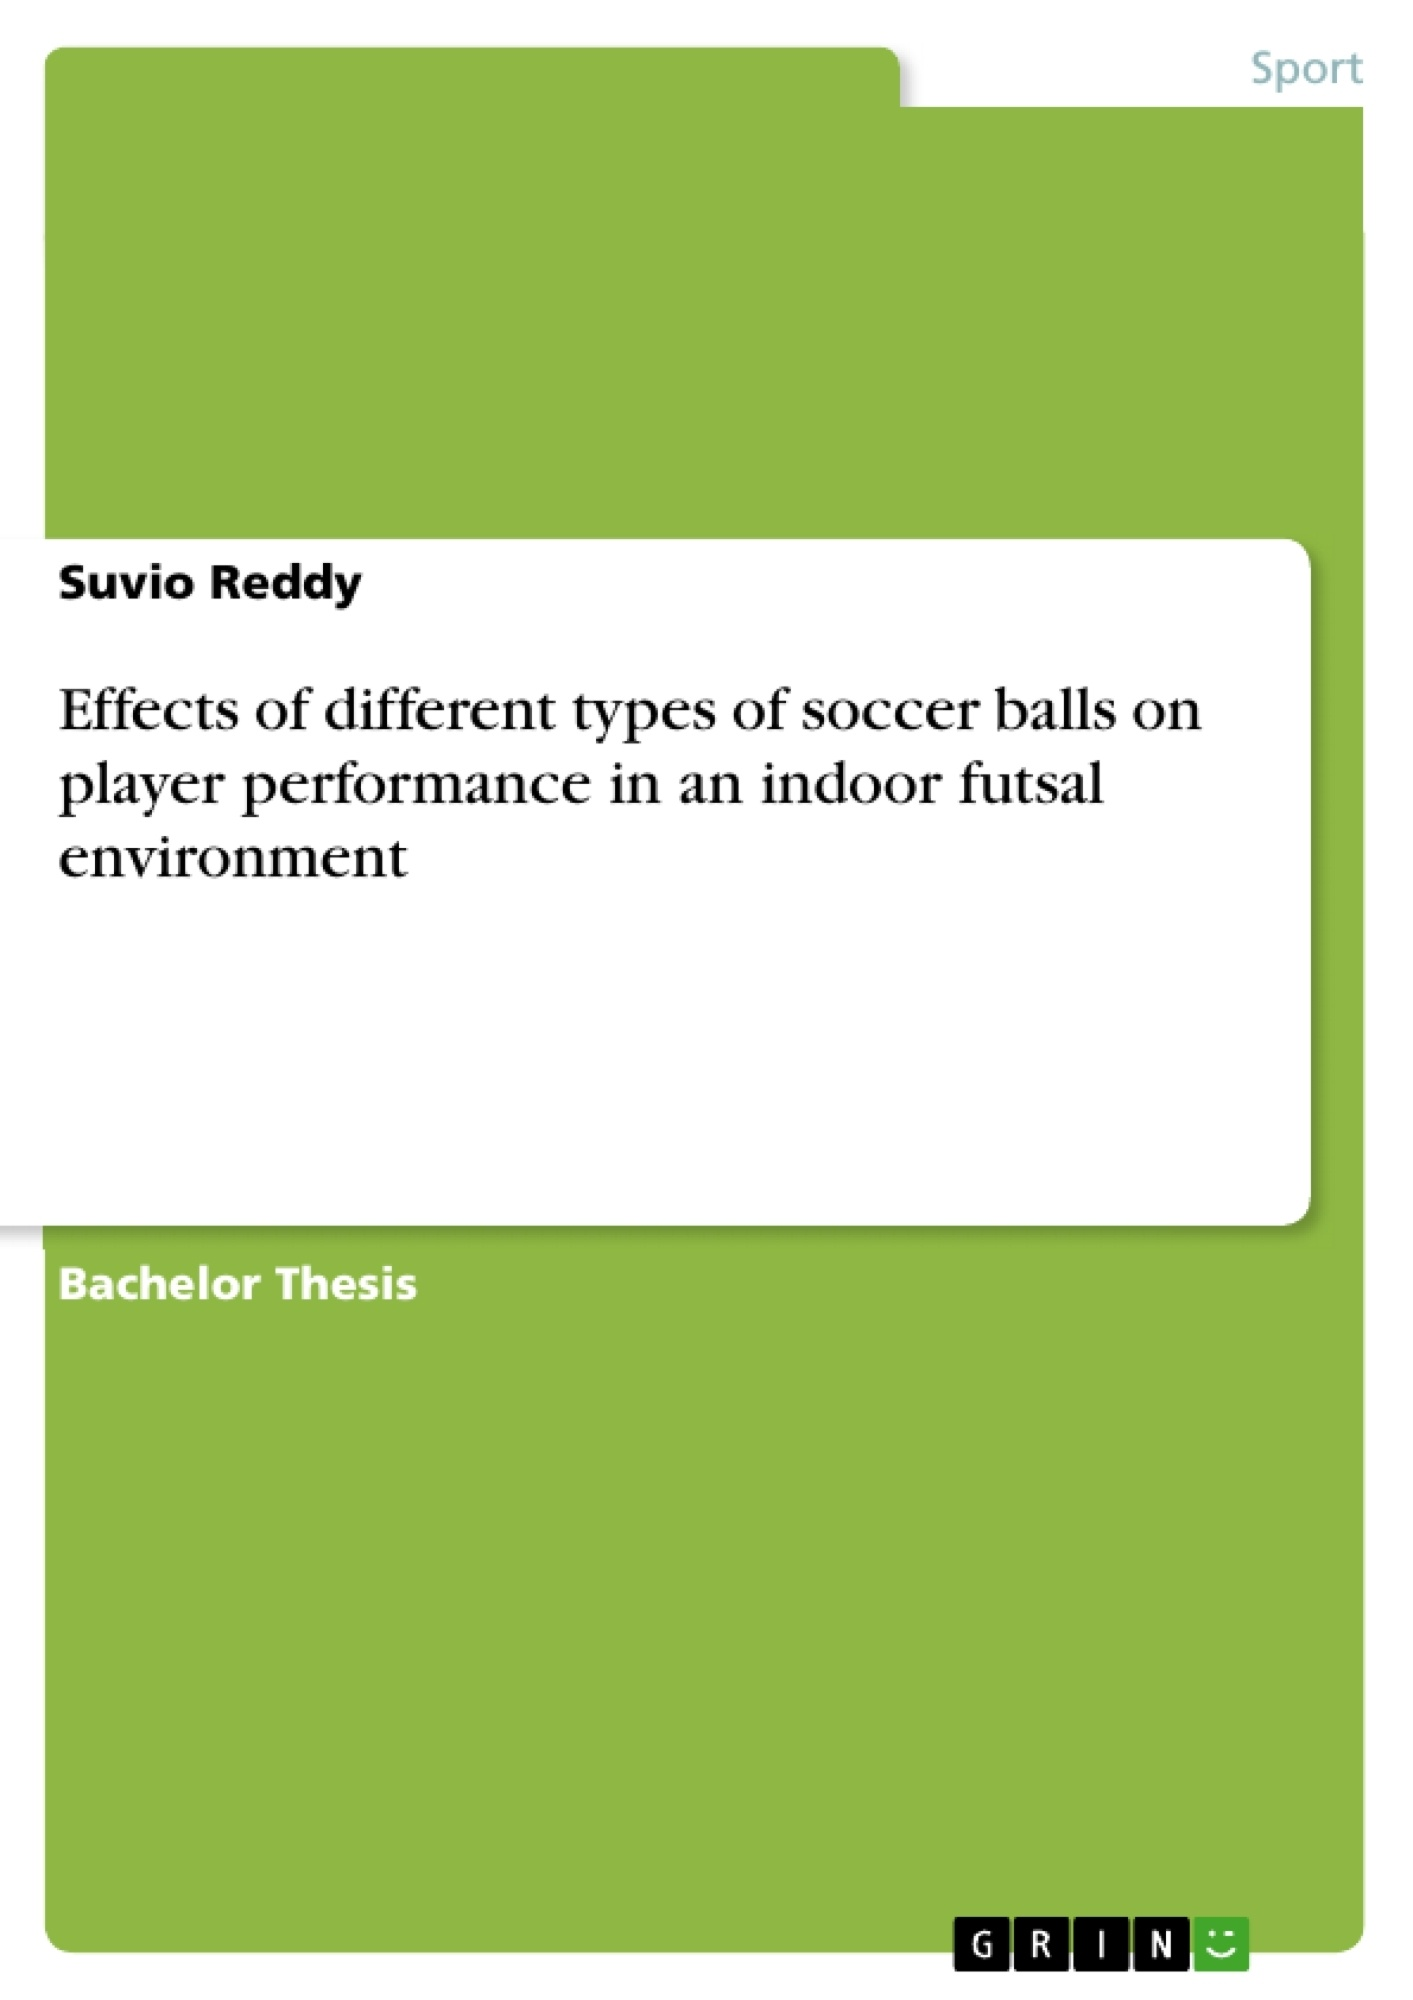 Title: Effects of different types of soccer balls on  player performance in an indoor futsal environment